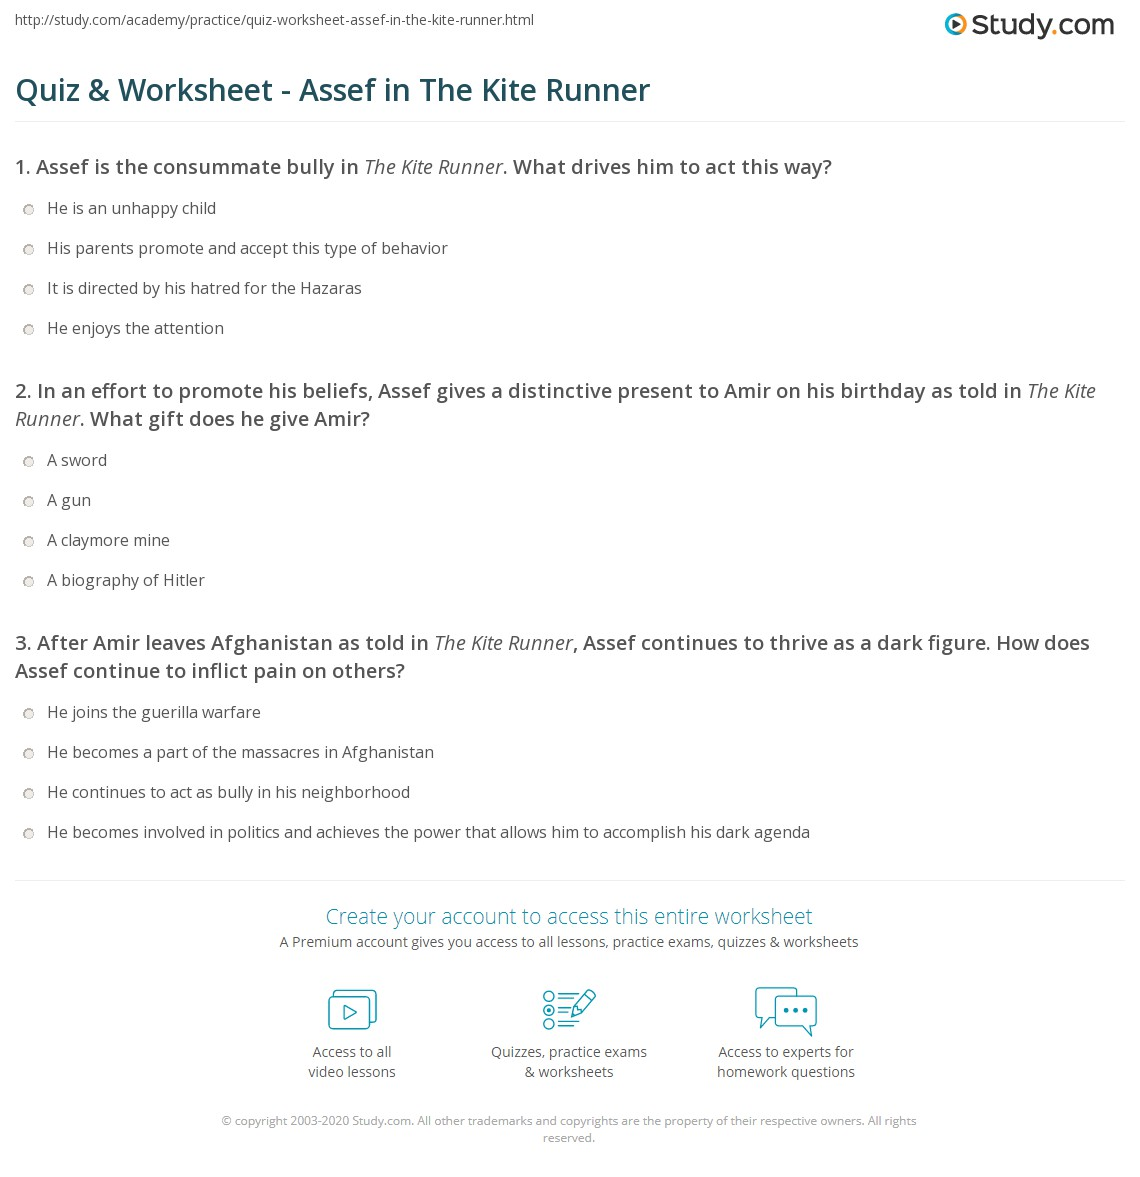 quiz worksheet assef in the kite runner com print assef in the kite runner character description analysis worksheet